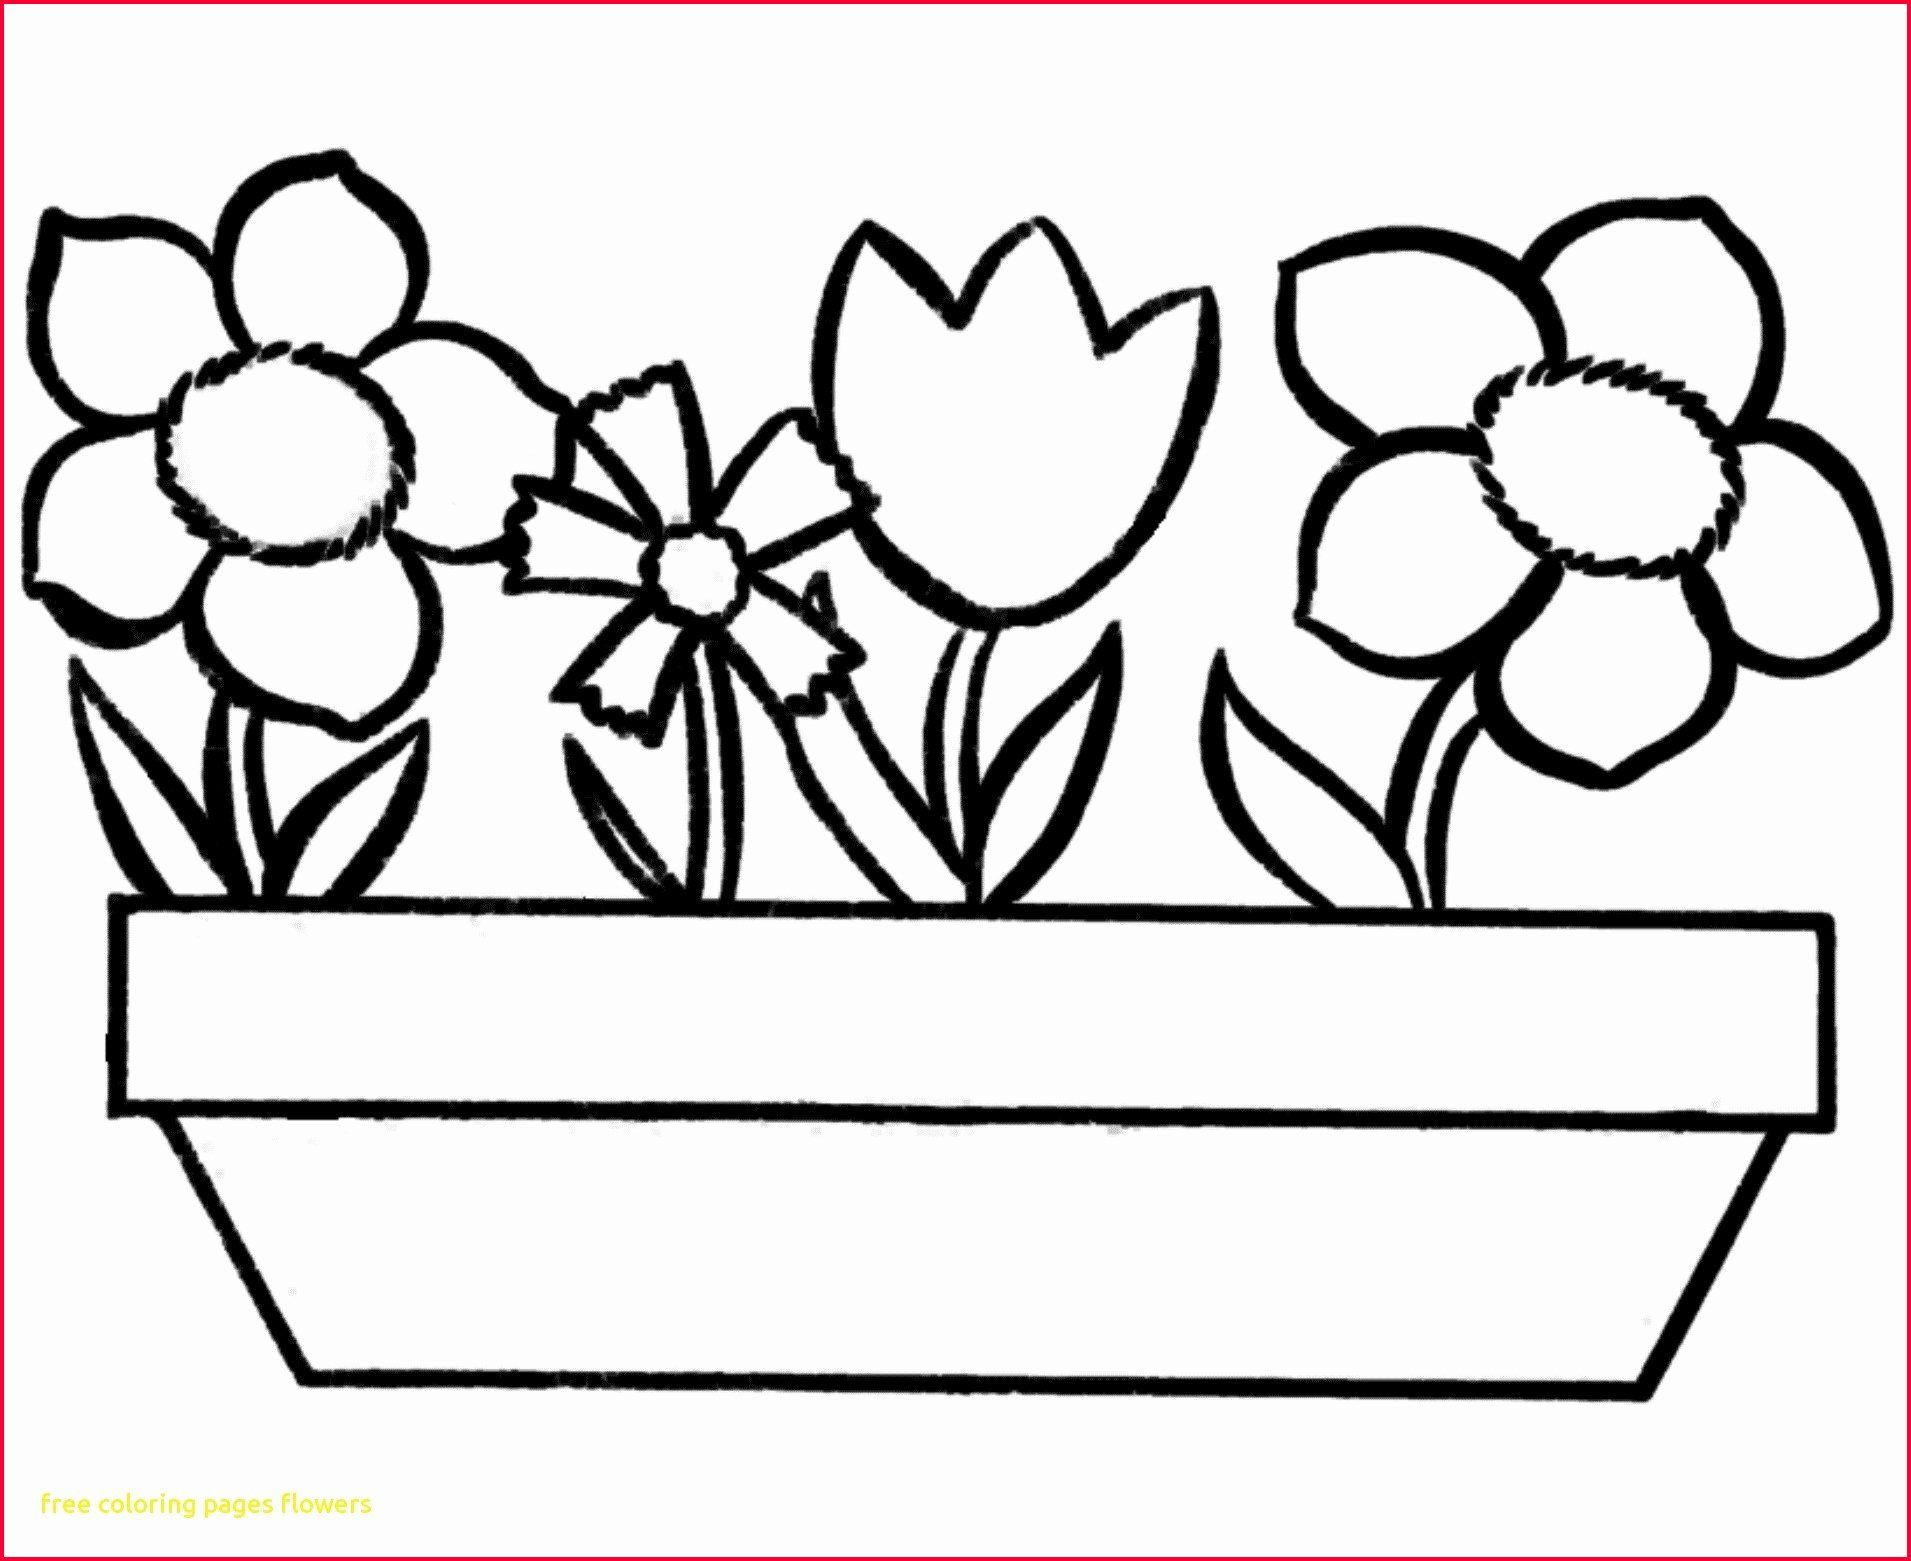 Flower Girl Coloring Books Elegant Free Coloring Pages for Girls